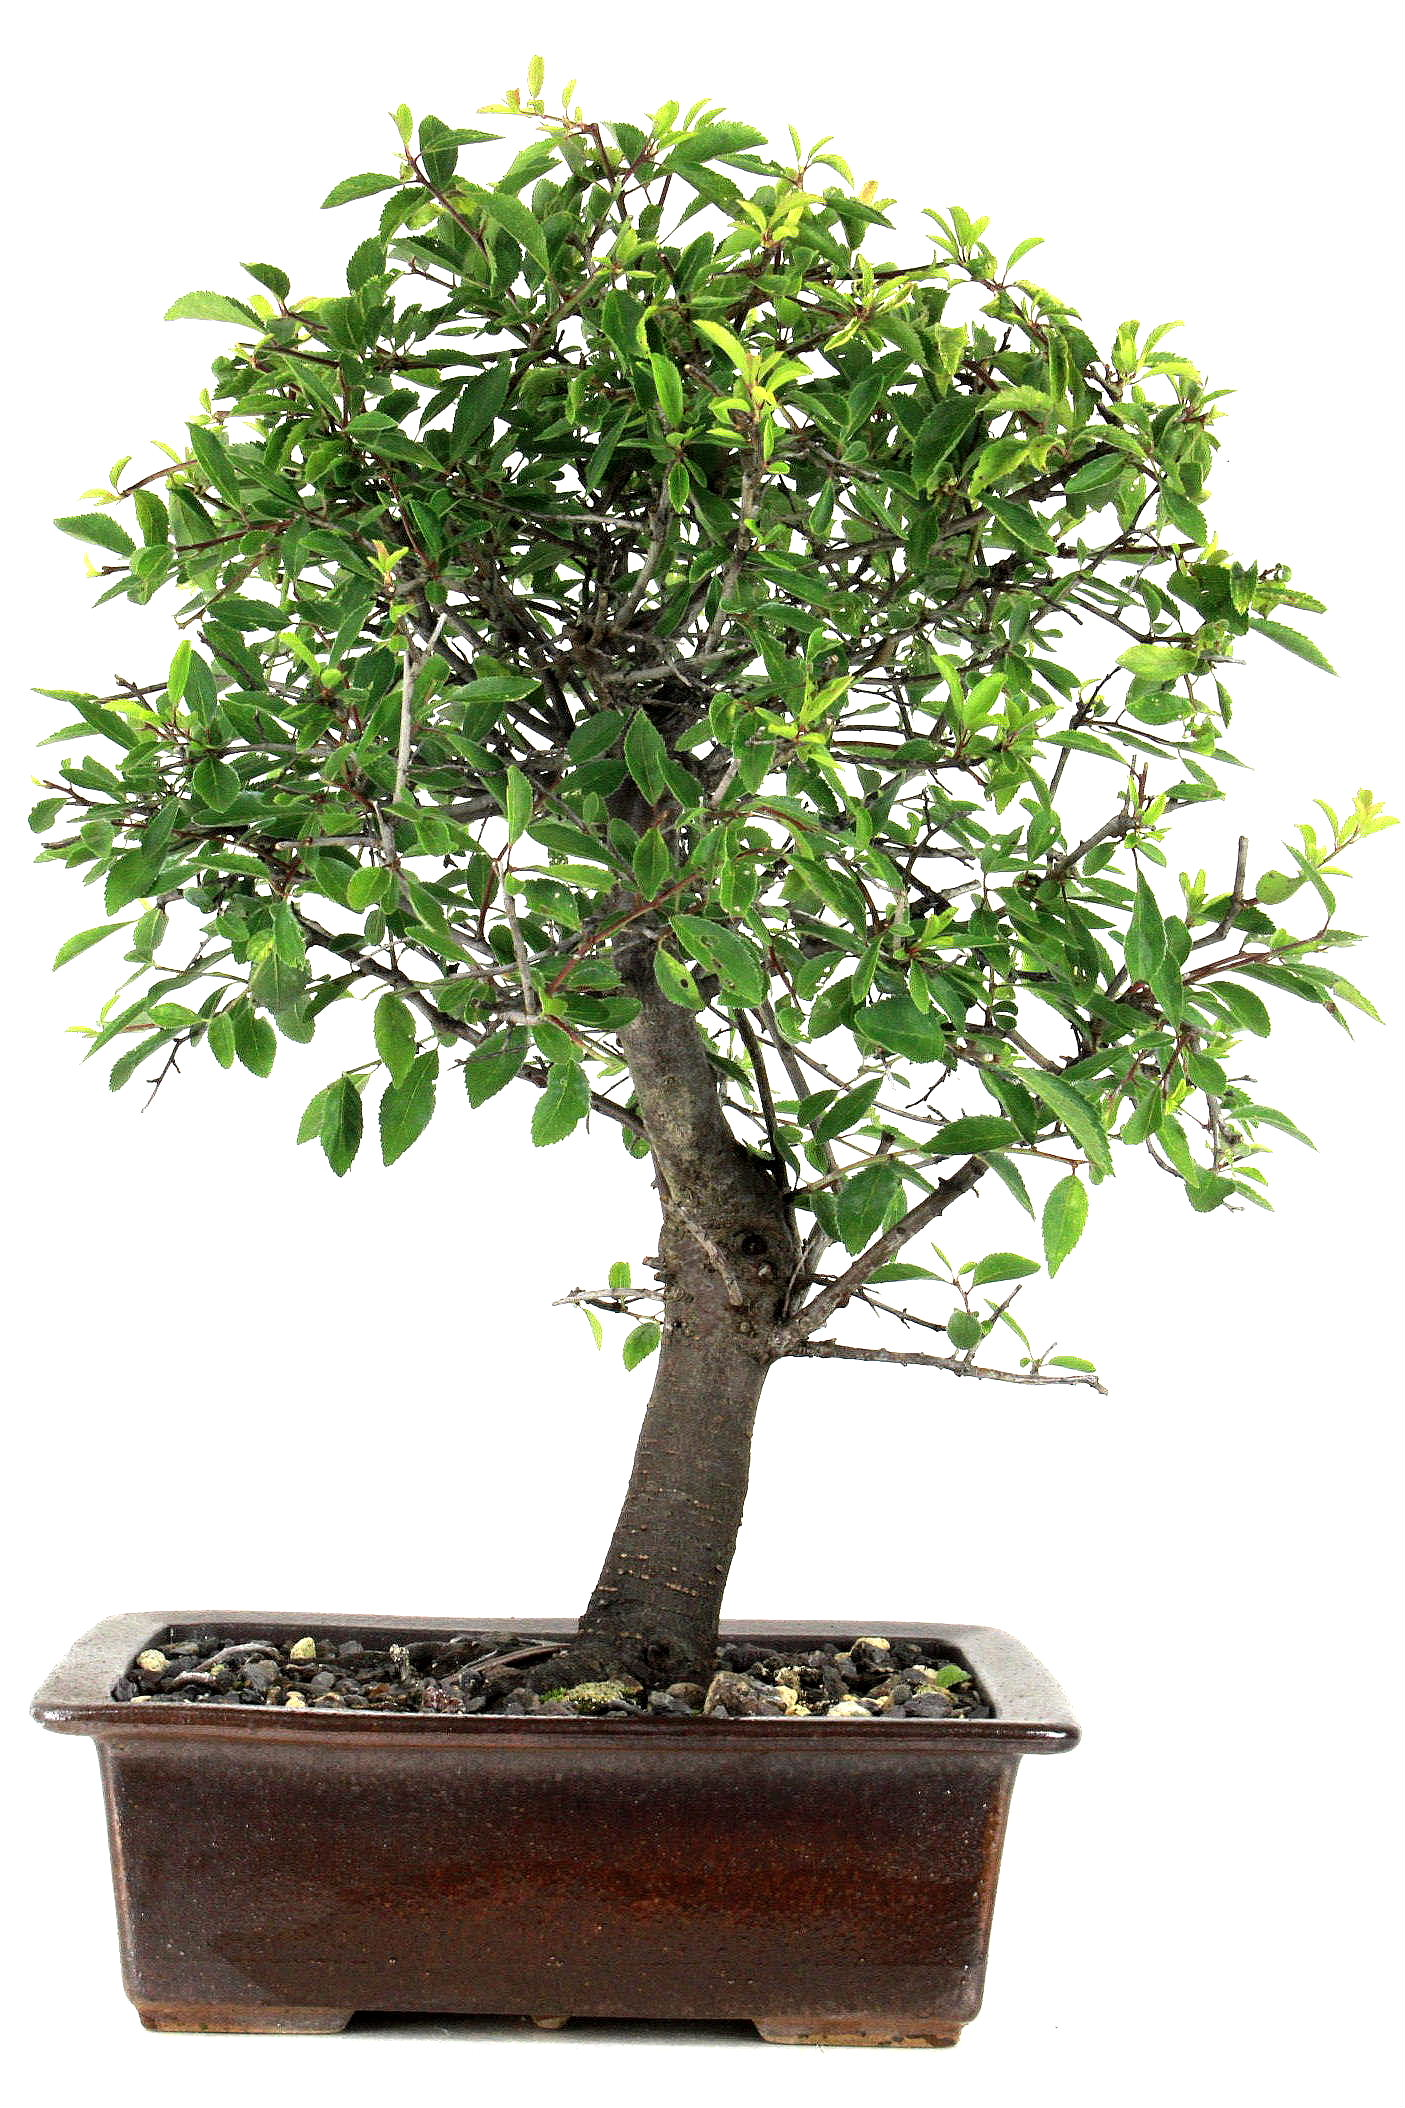 schlehe prunus spinosa 43 cm 242 bei oyaki bonsai kaufen. Black Bedroom Furniture Sets. Home Design Ideas